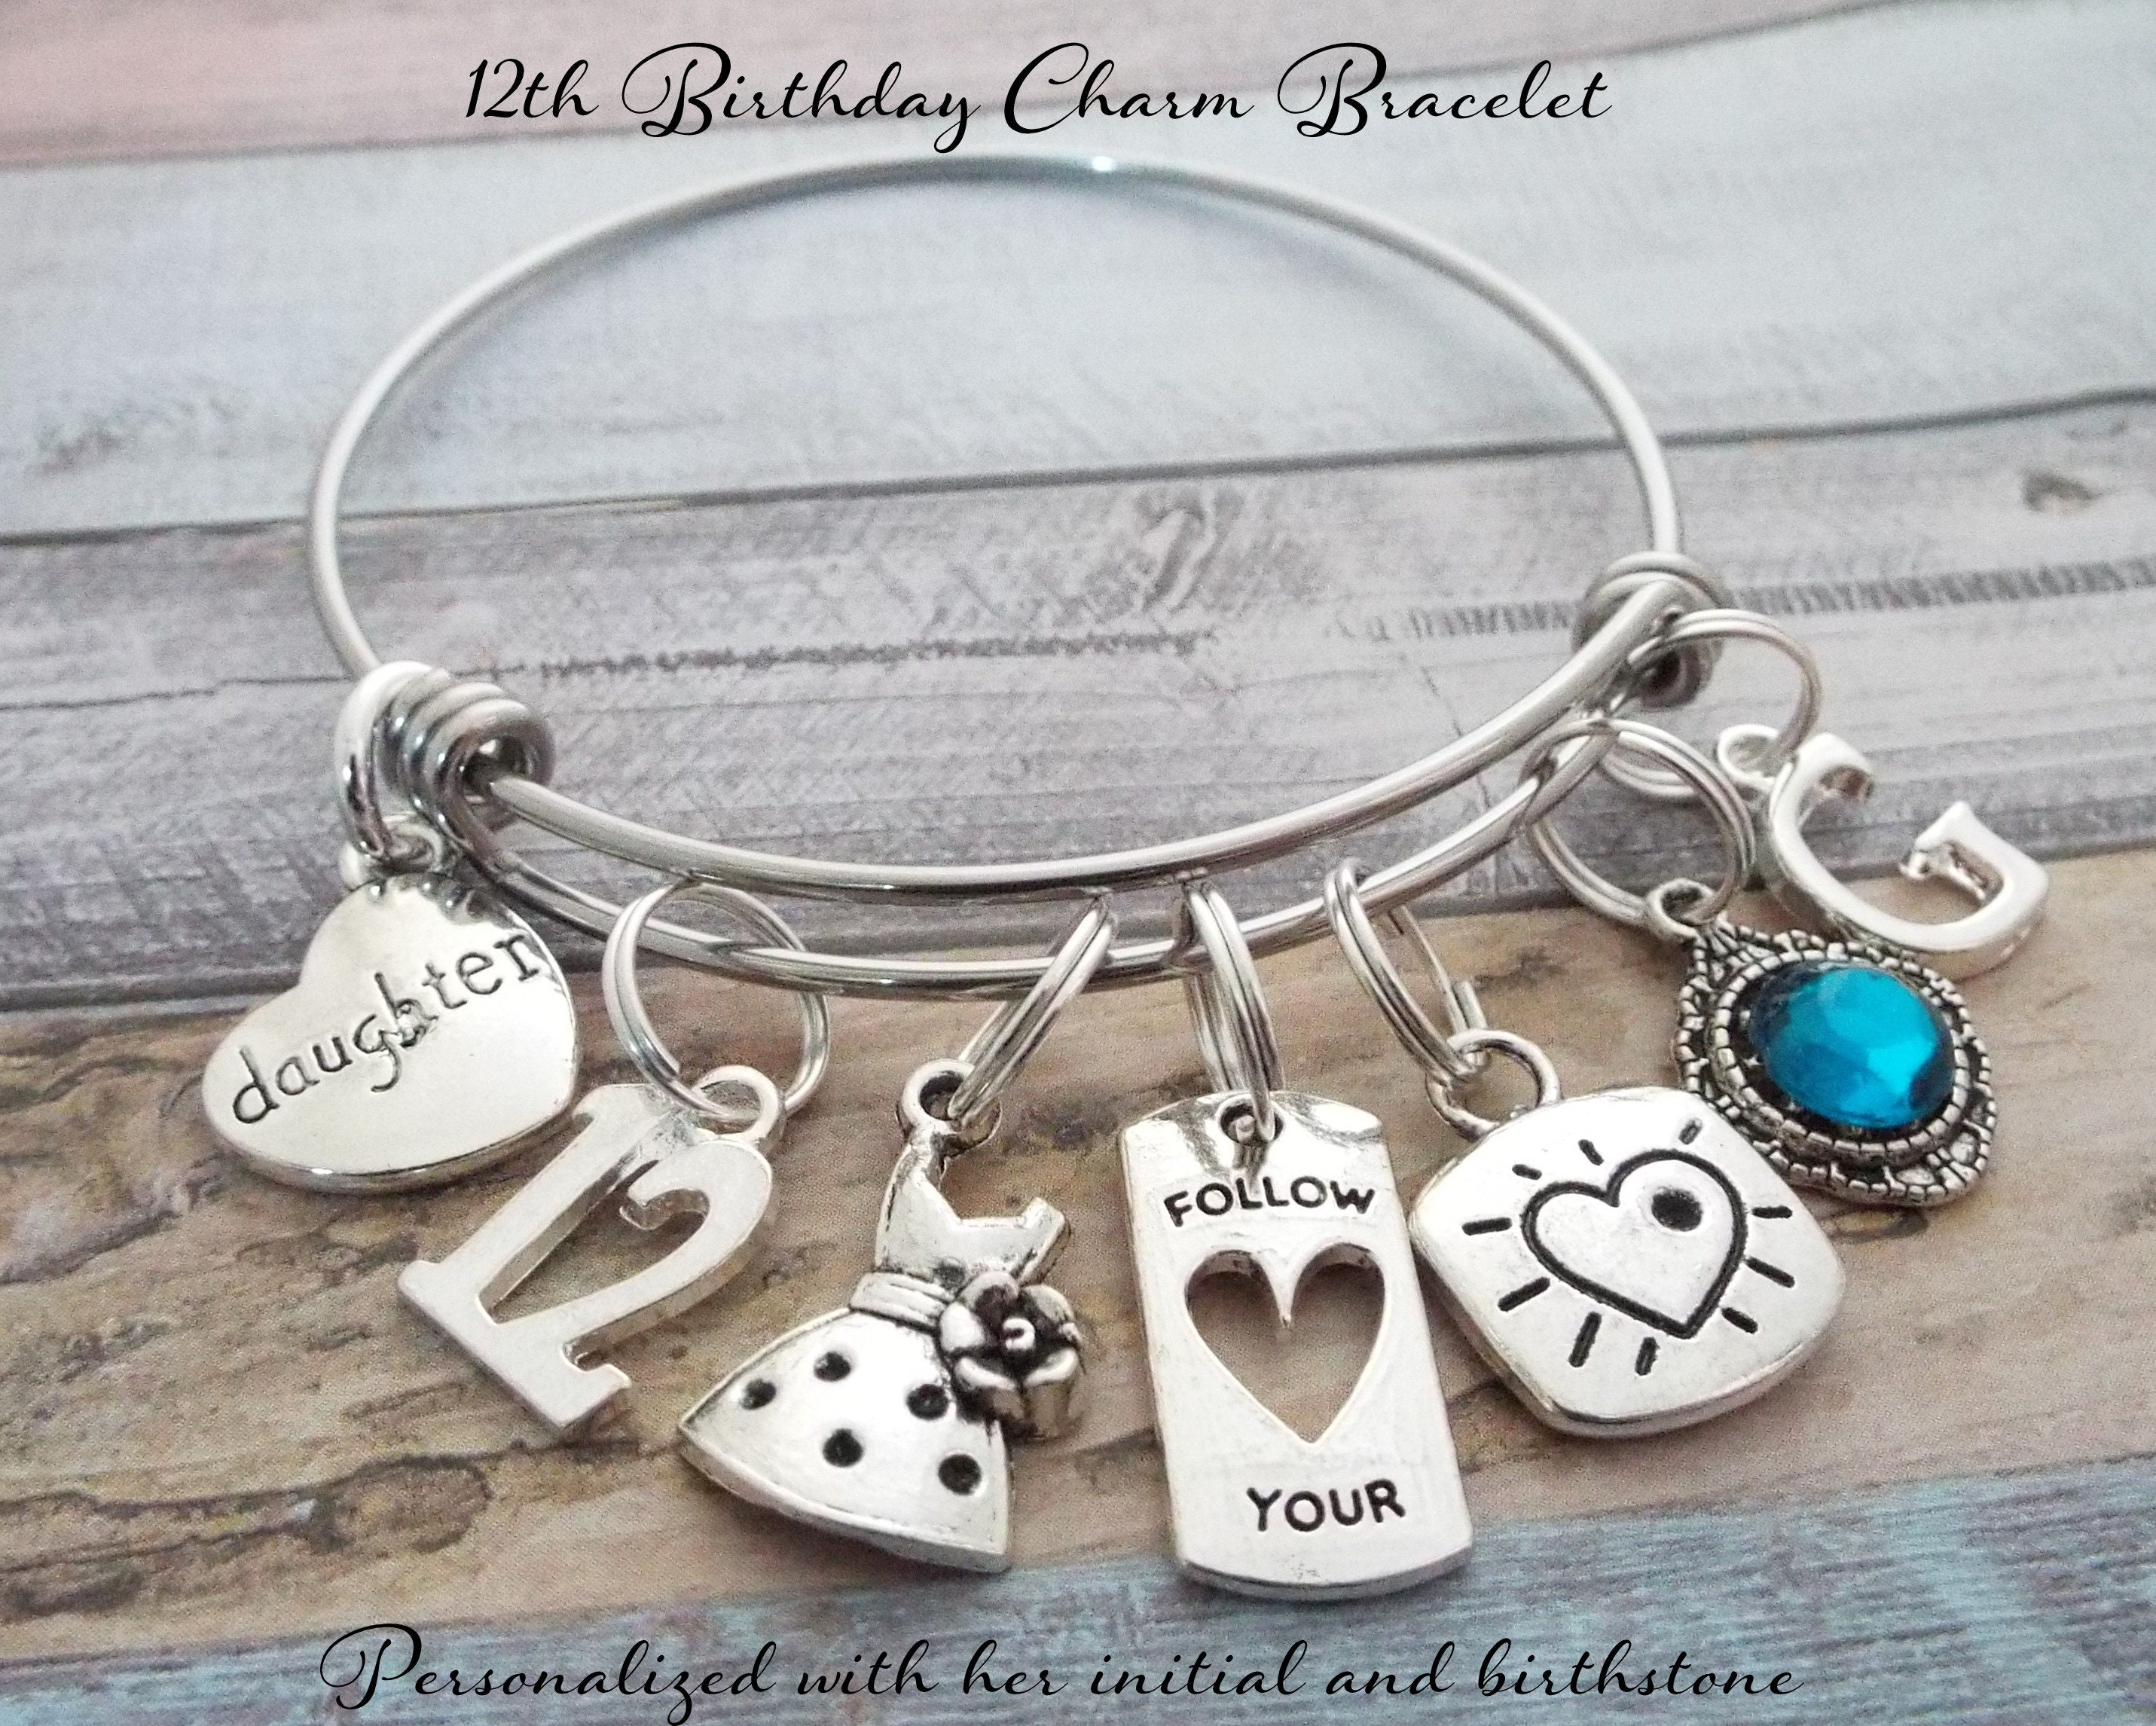 12 Year Old Girls Birthday Charm Bracelet Gift Daughter Personalized Gallery Photo